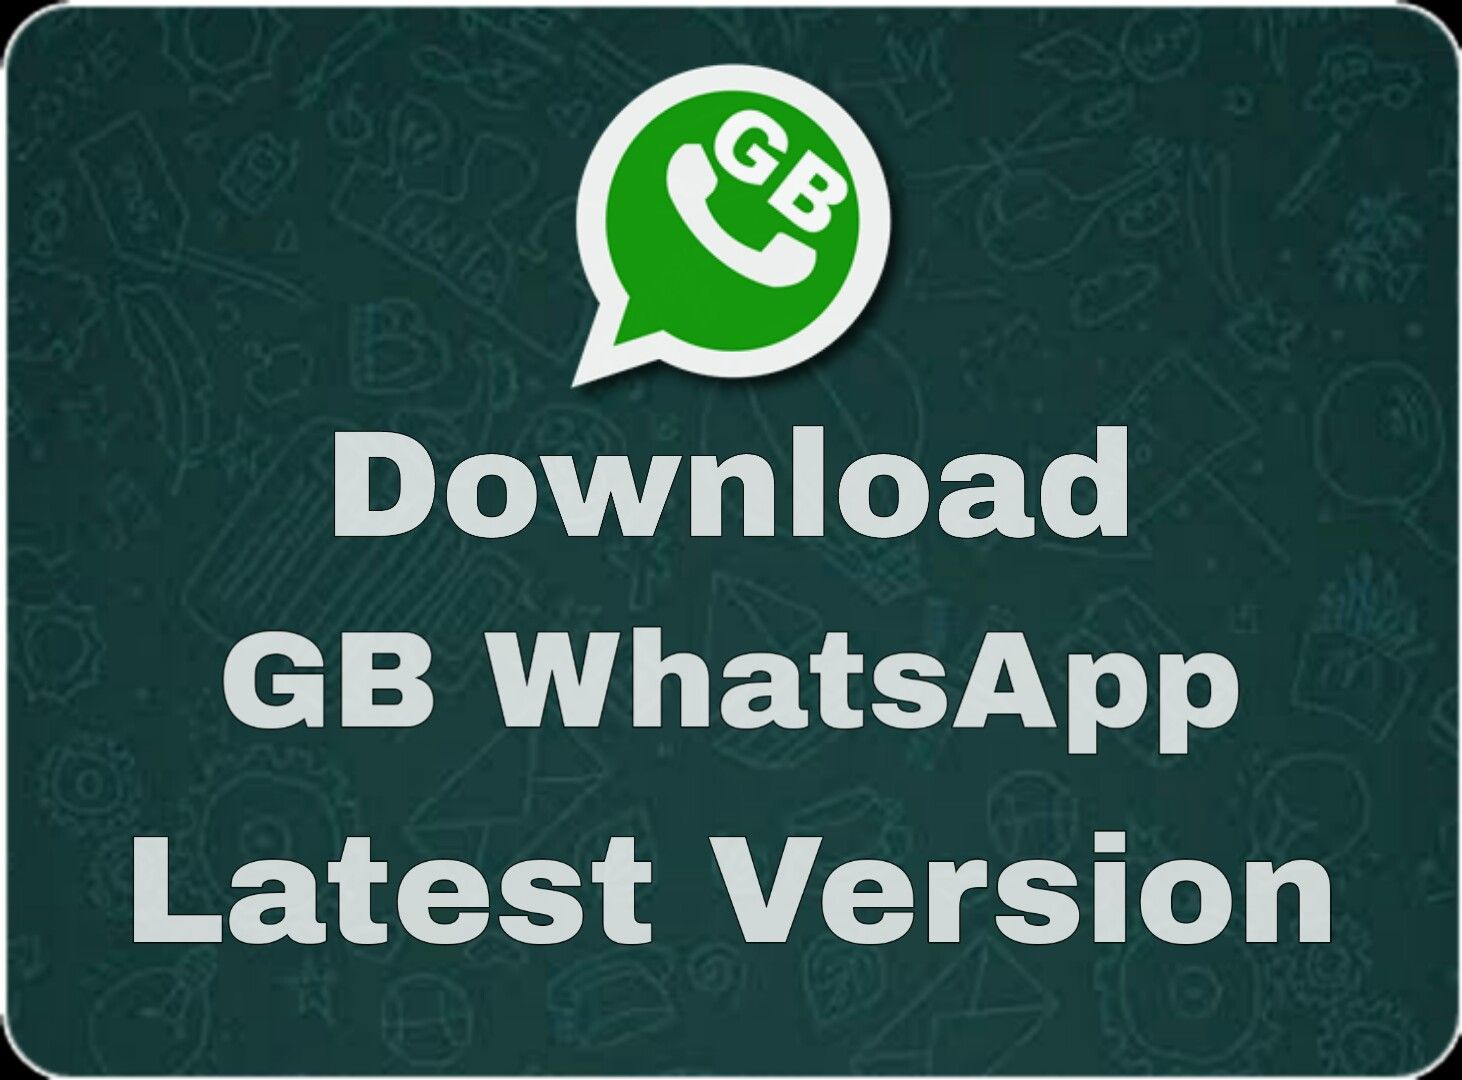 GB Whatsapp Update or Download Latest Version Apk for